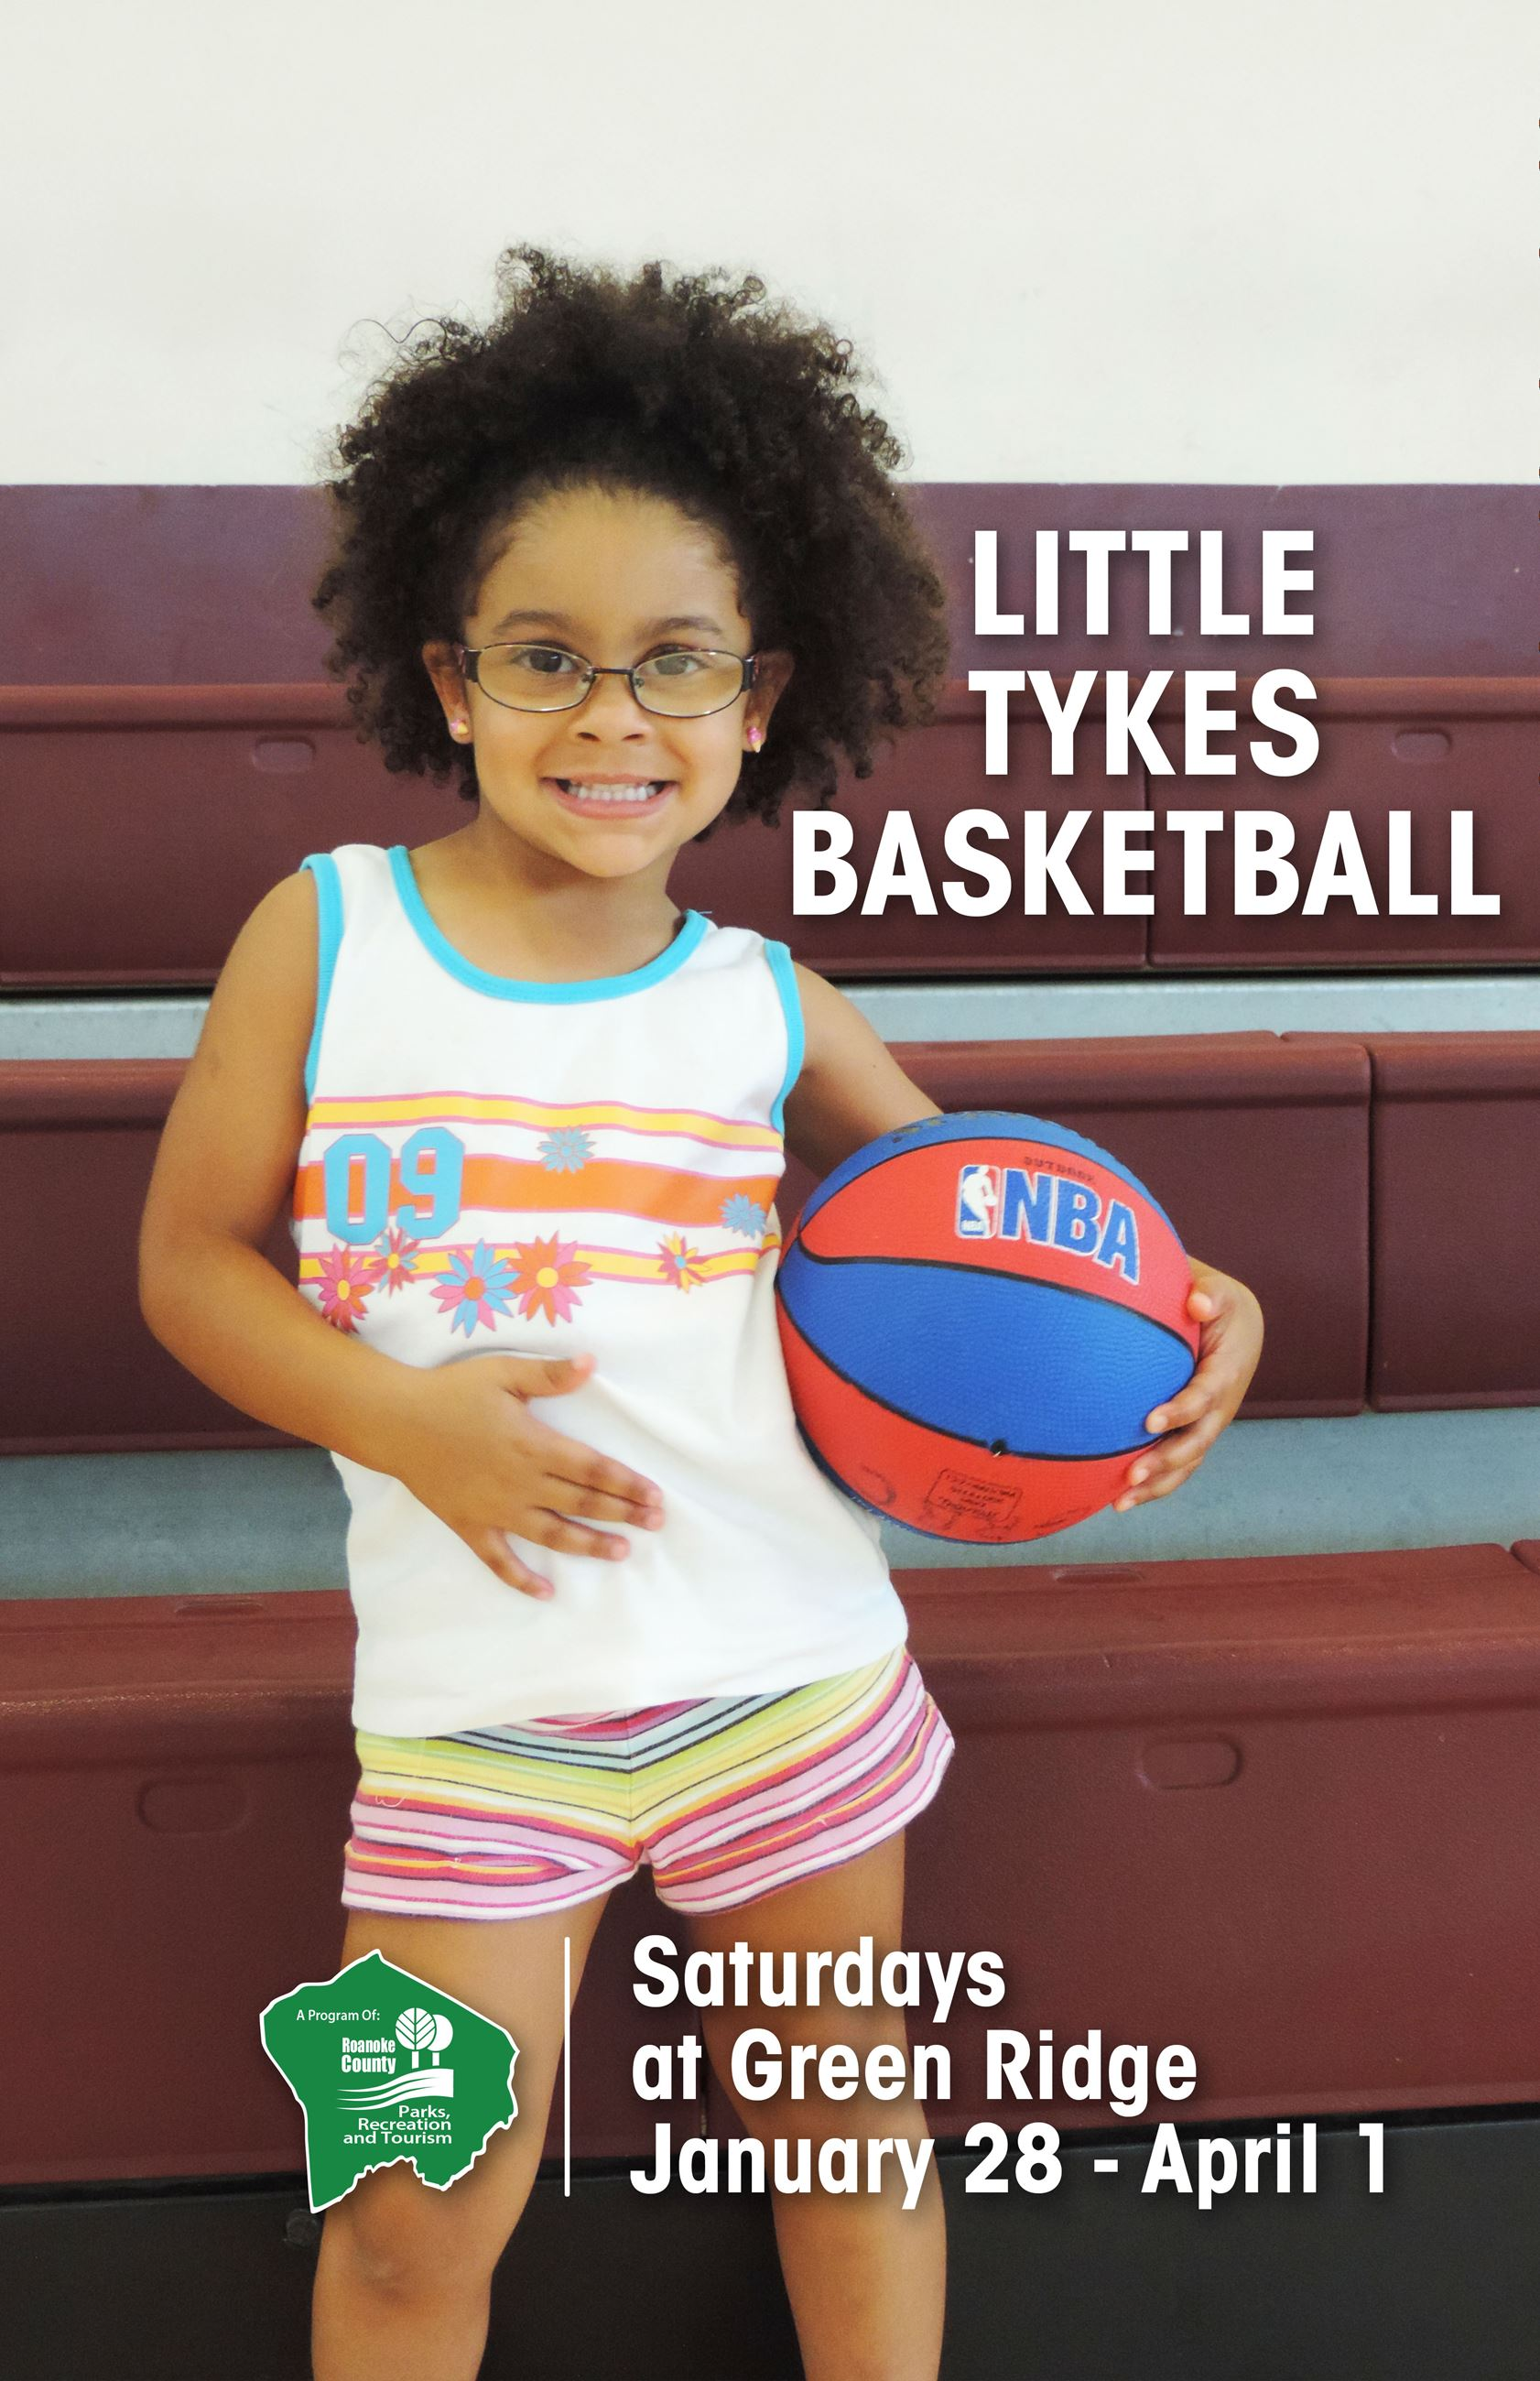 Little Tykes Basketball 11x17